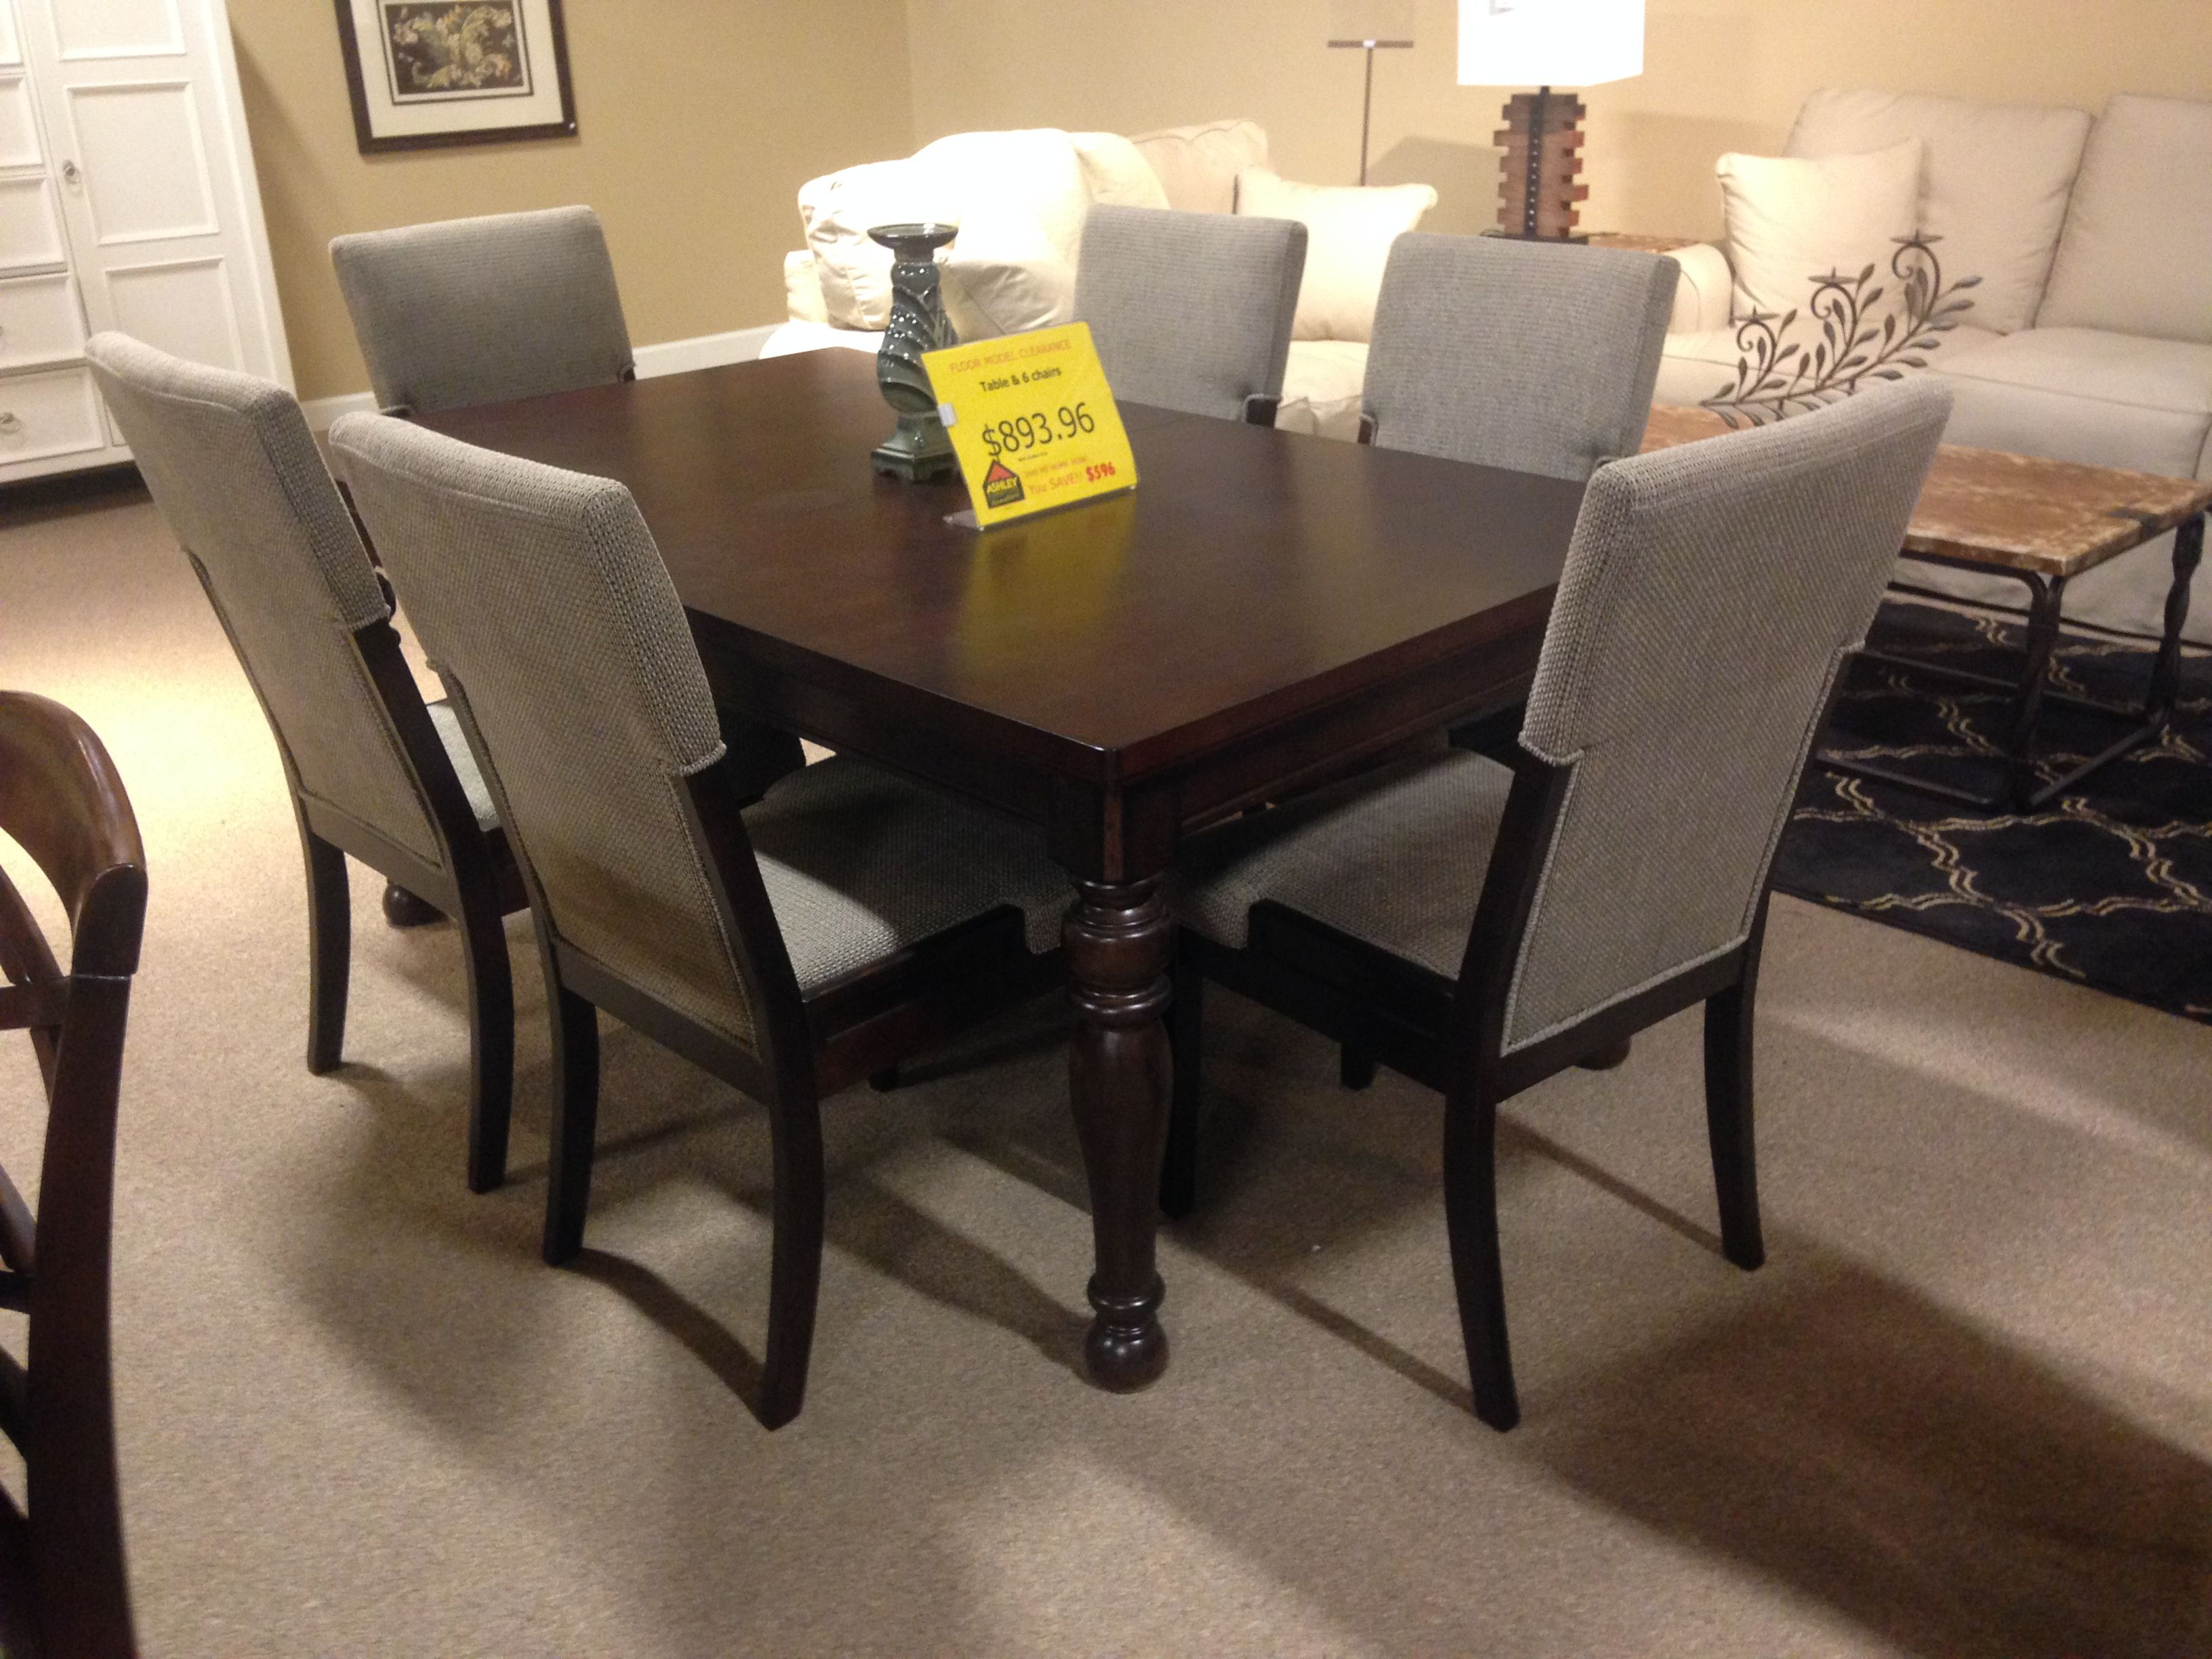 On Clearance At Ashleyfurniture At Richland Wa Home Design Chair Myhome Mydesign Diningroom Table Sustainable Furniture Ashley Furniture House Styles